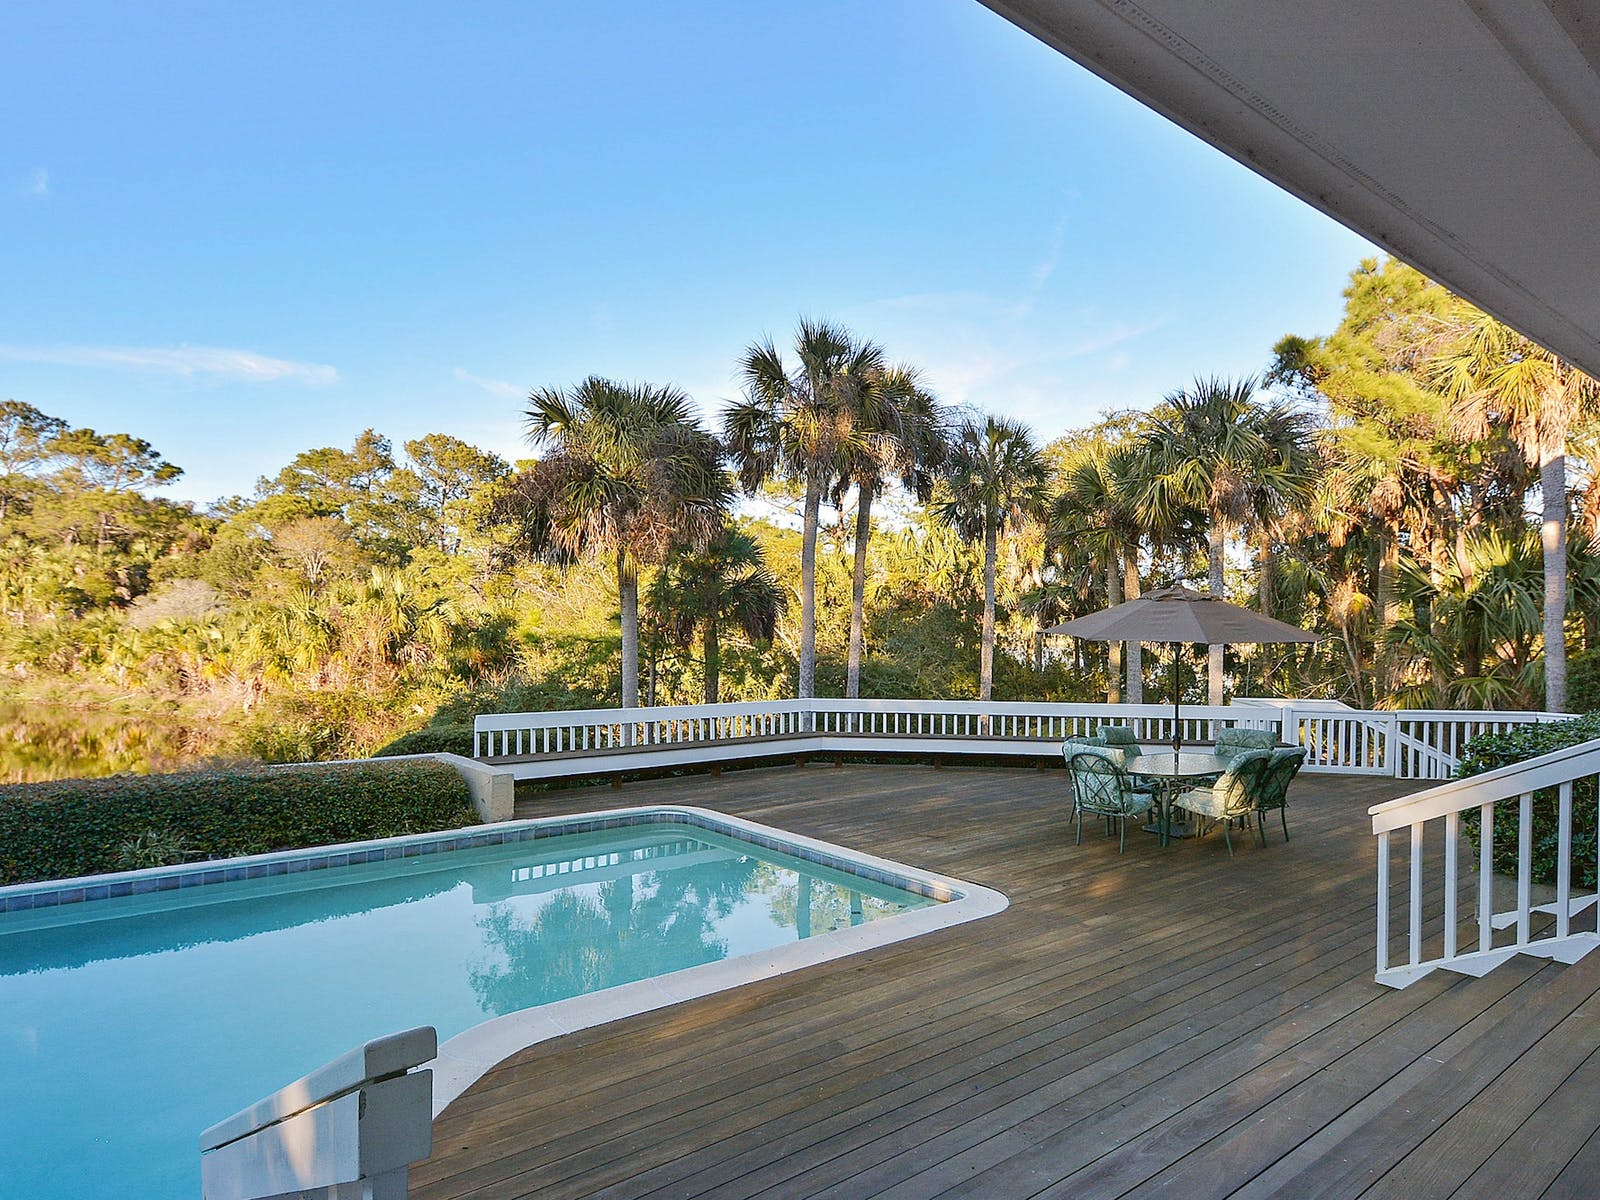 Outdoor pool of vacation rental located in Kiawah Island, SC